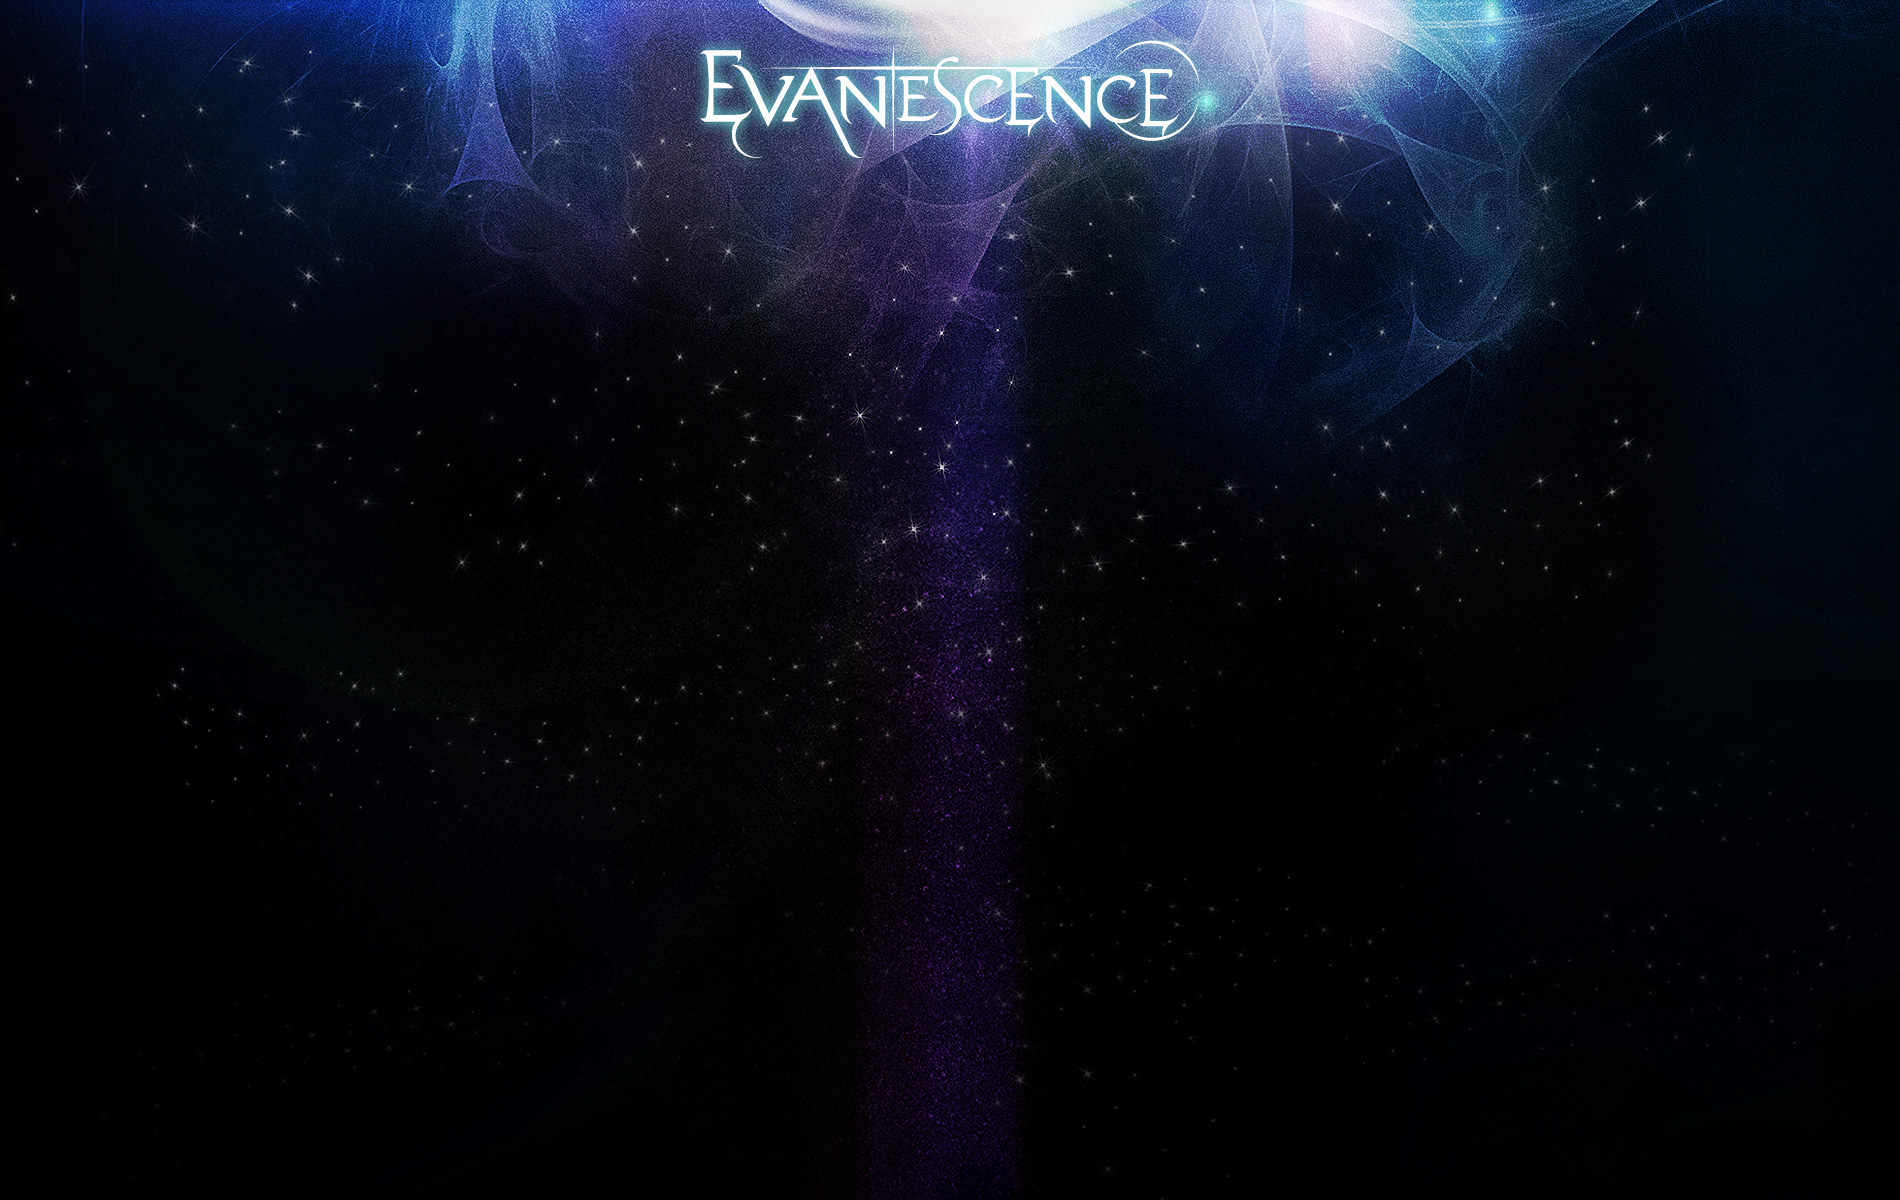 EVANESCENCE WALLPAPERS FREE Wallpapers Background images 1900x1200